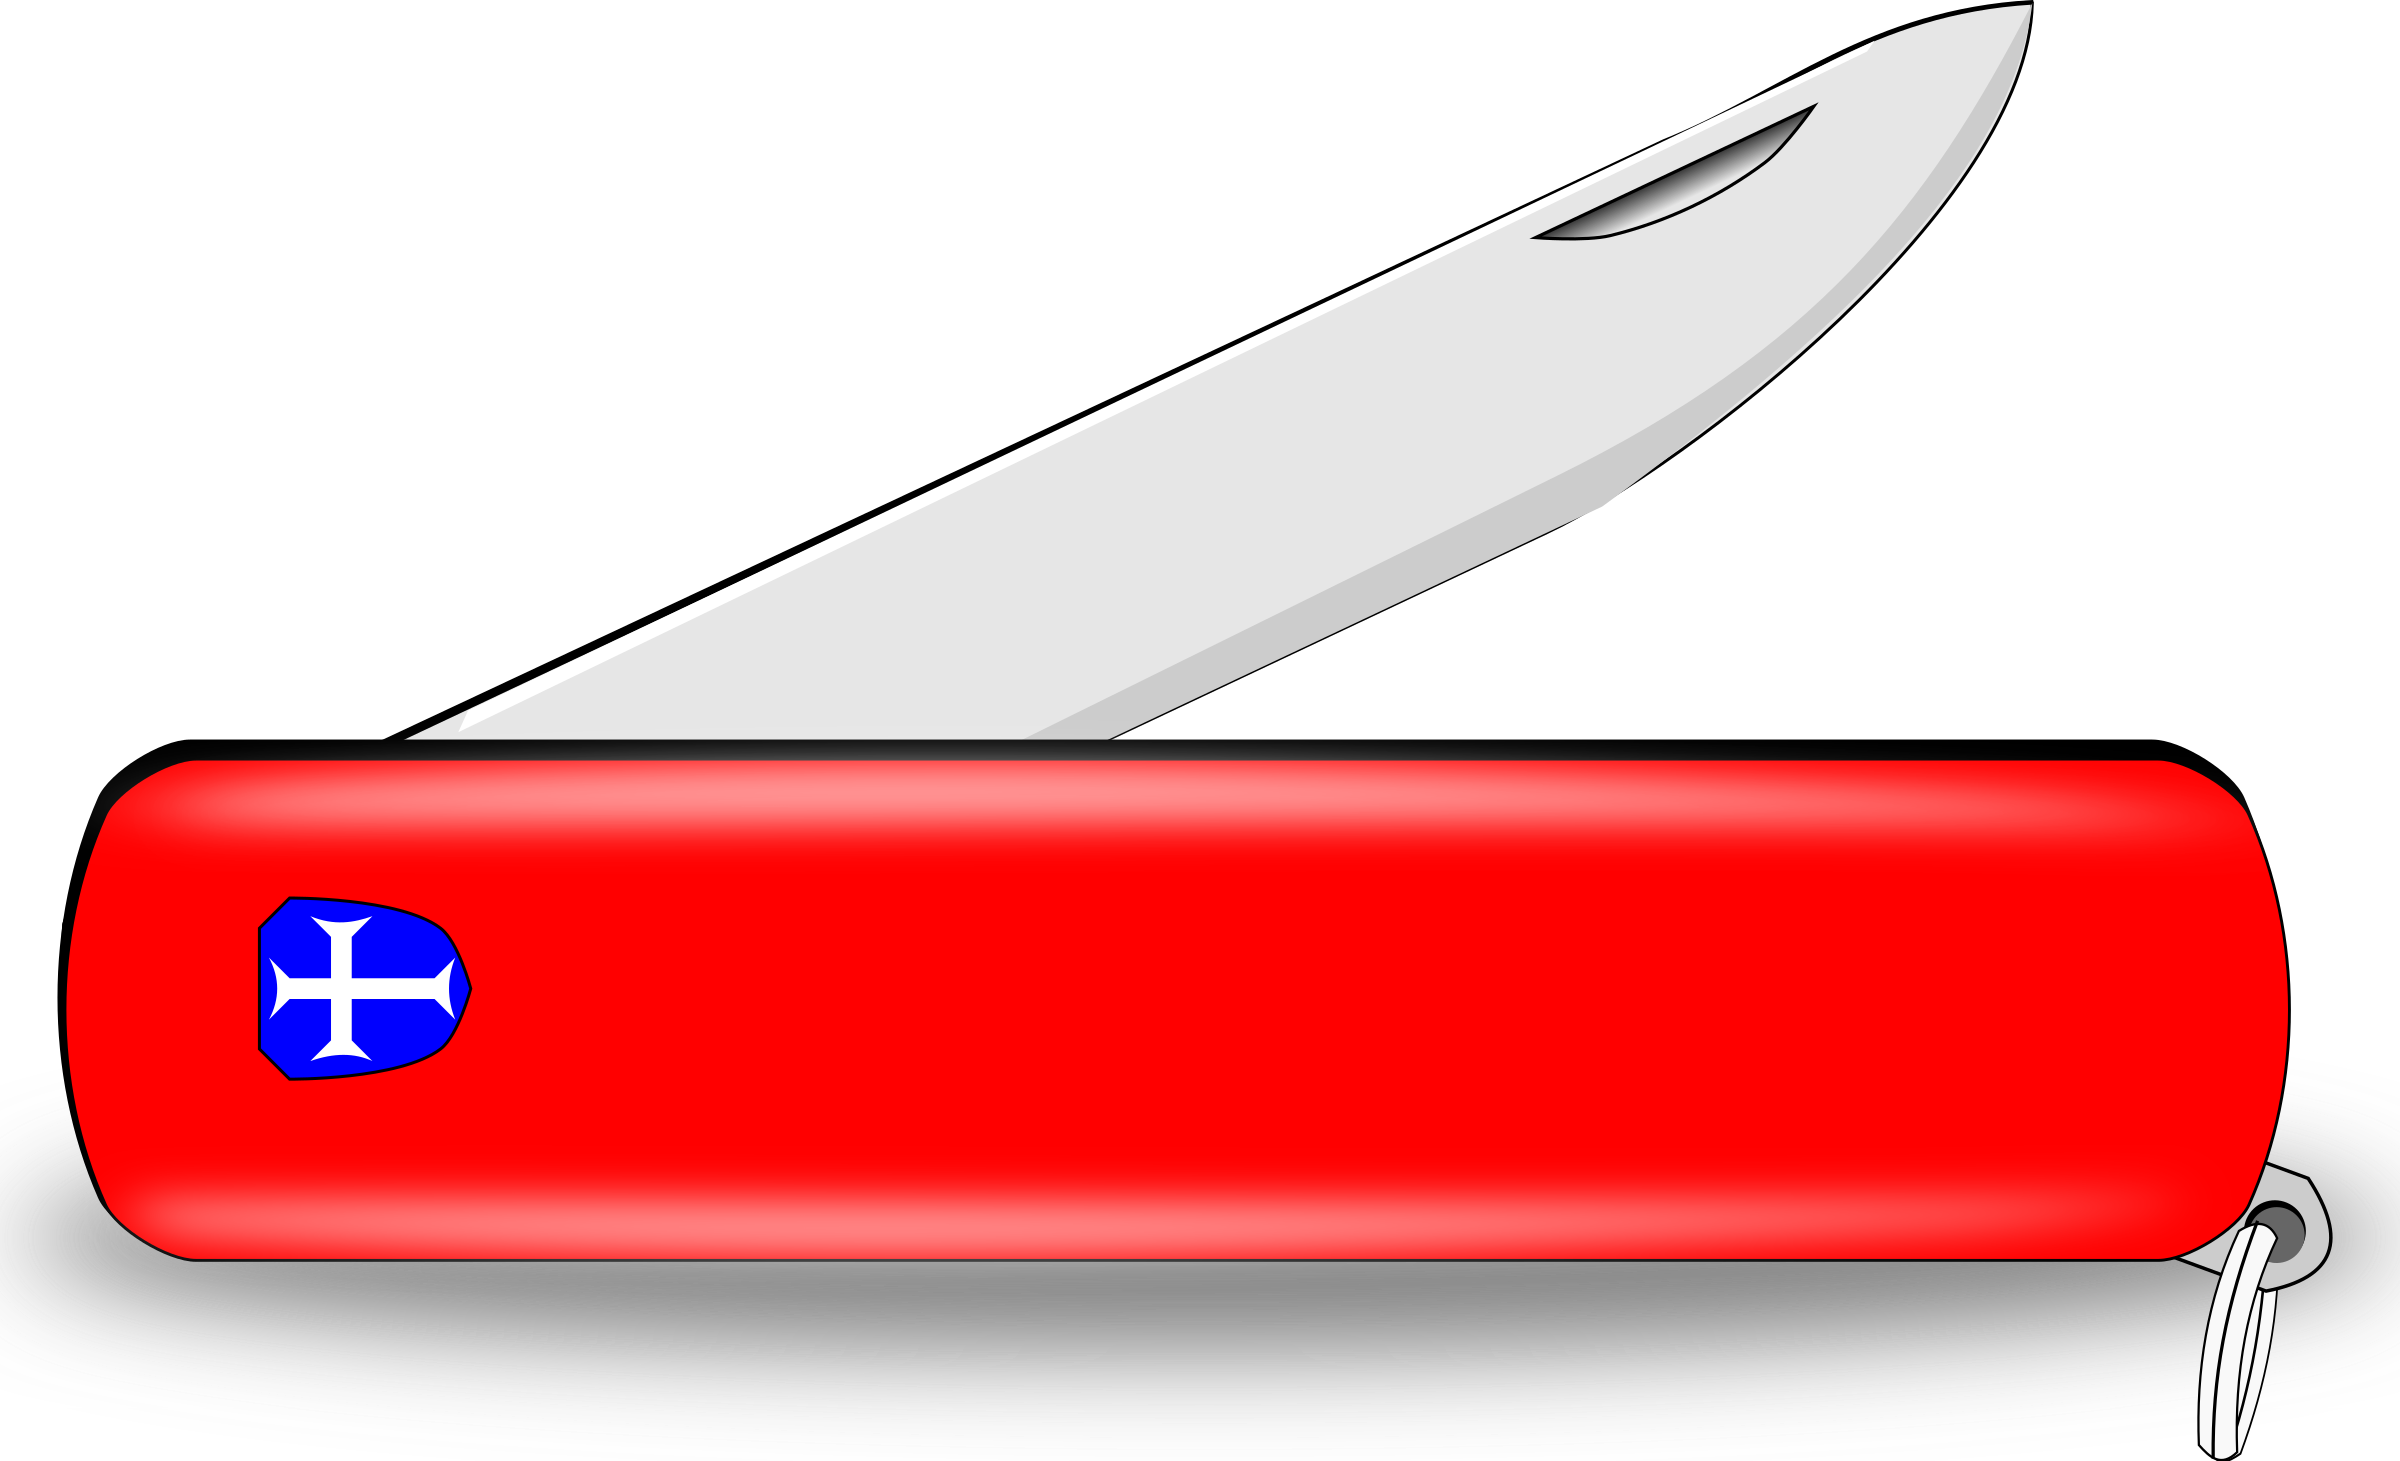 Knife clipart utility knife.  collection of pocket